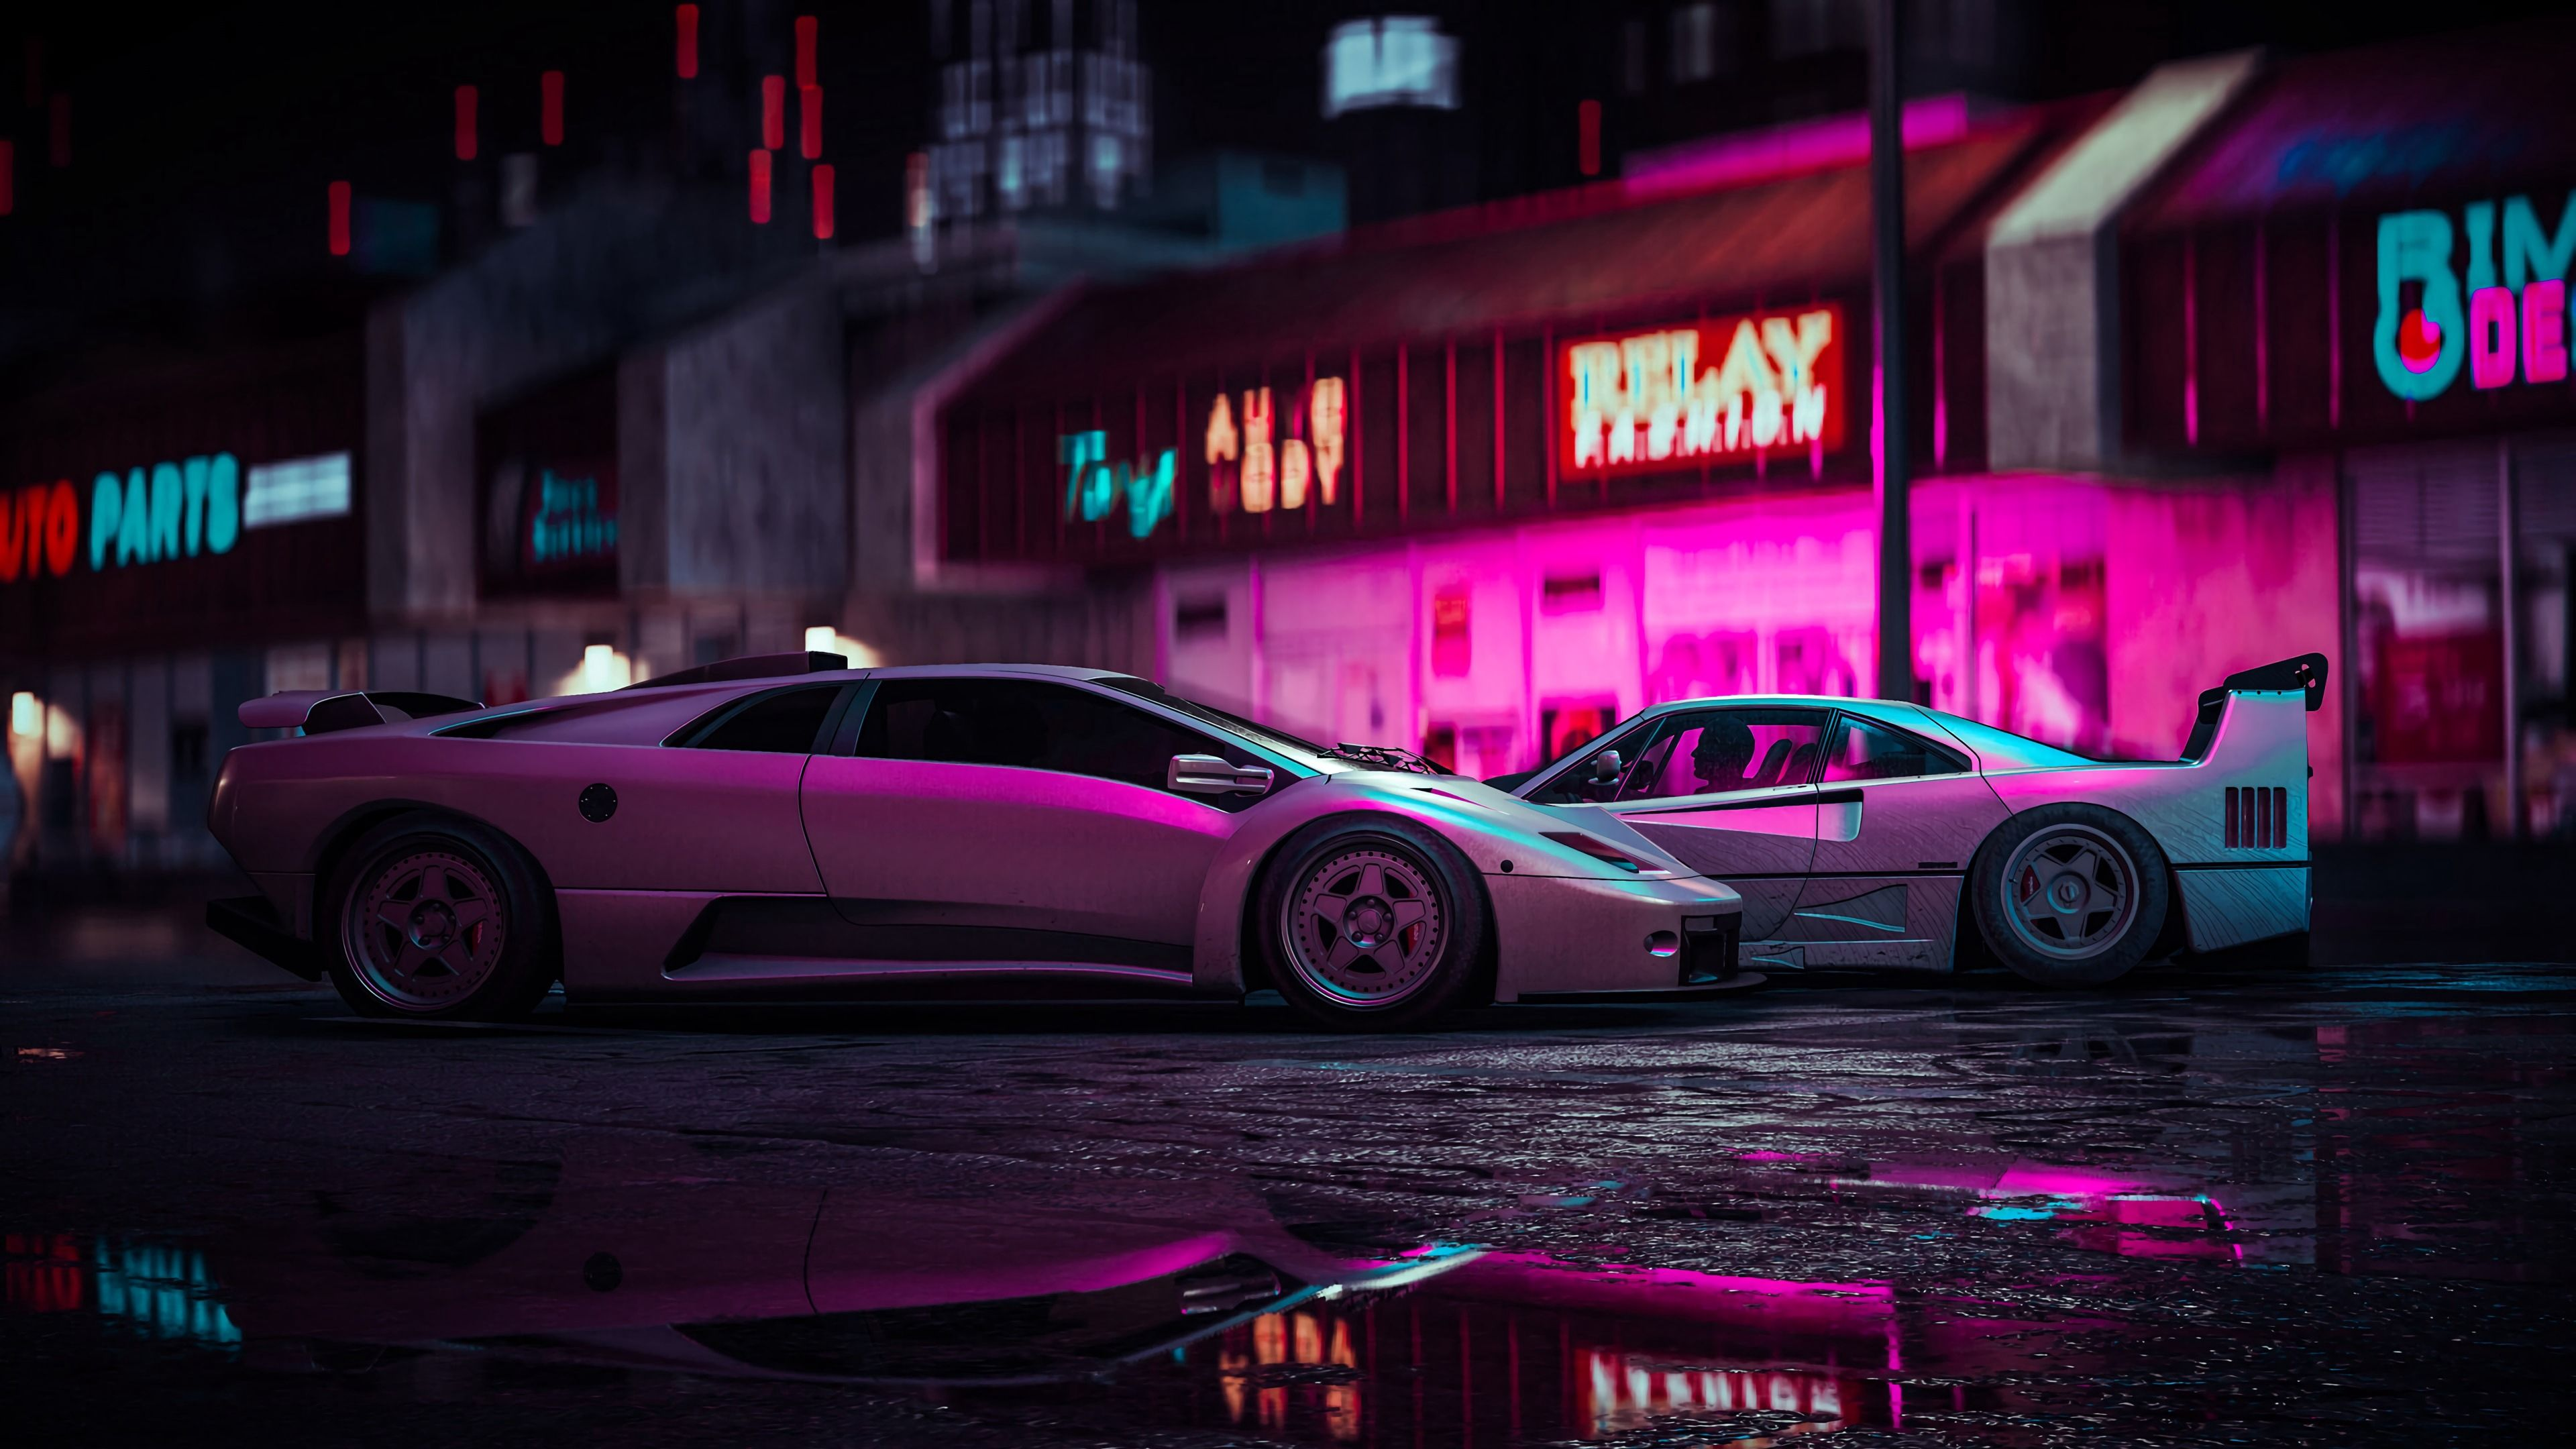 By rami tabari 05 april 2021 the best 4k laptops with the brightest and most colorful screens the best 4k laptops are beautiful enough to. Download Wallpaper 3840x2160 Car Sports Car Neon Backlight Street 4k Uhd 16 9 Hd Background Neon Wallpaper Car Wallpapers Bmw Wallpapers